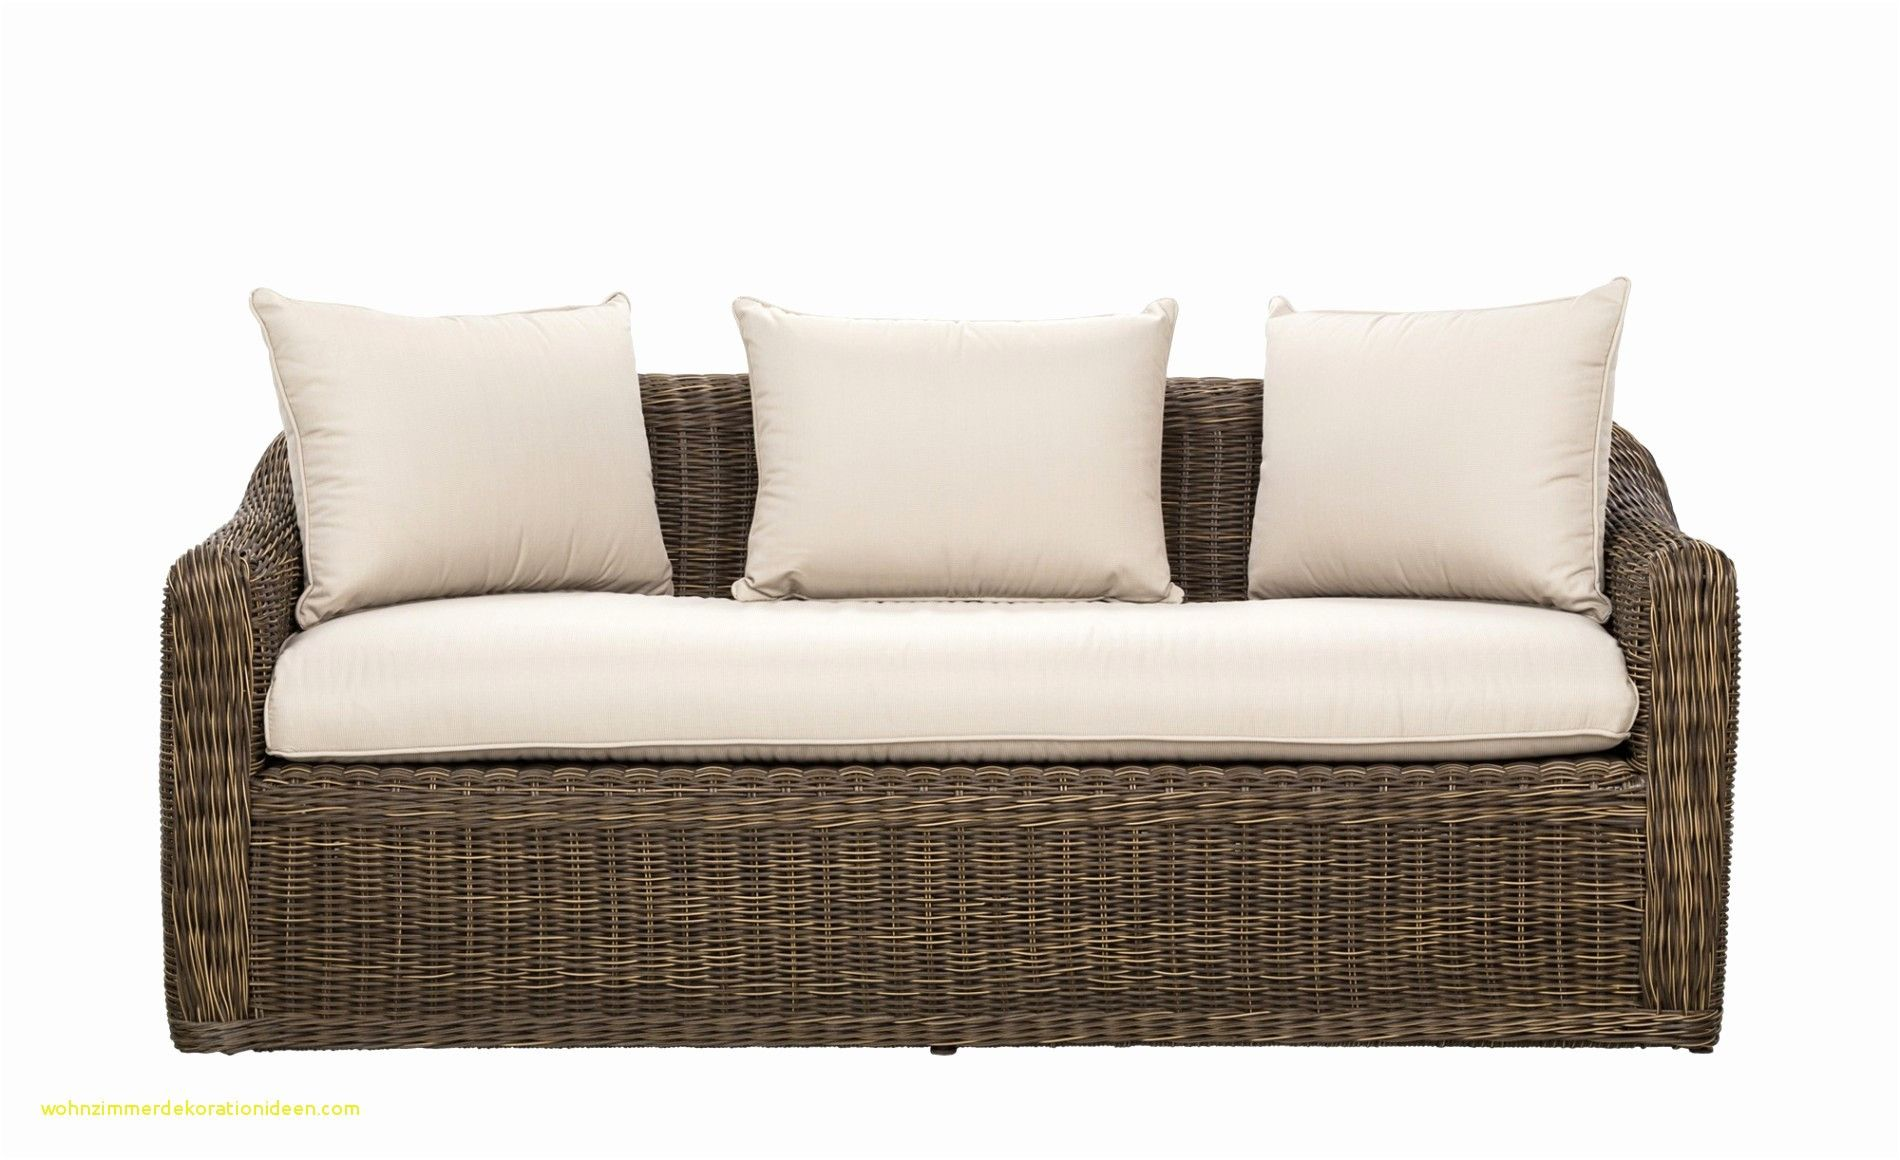 Preciou S Couch Bei Poco Check More At Https Tridentbeauties Org Couch Bei Poco 2 21375